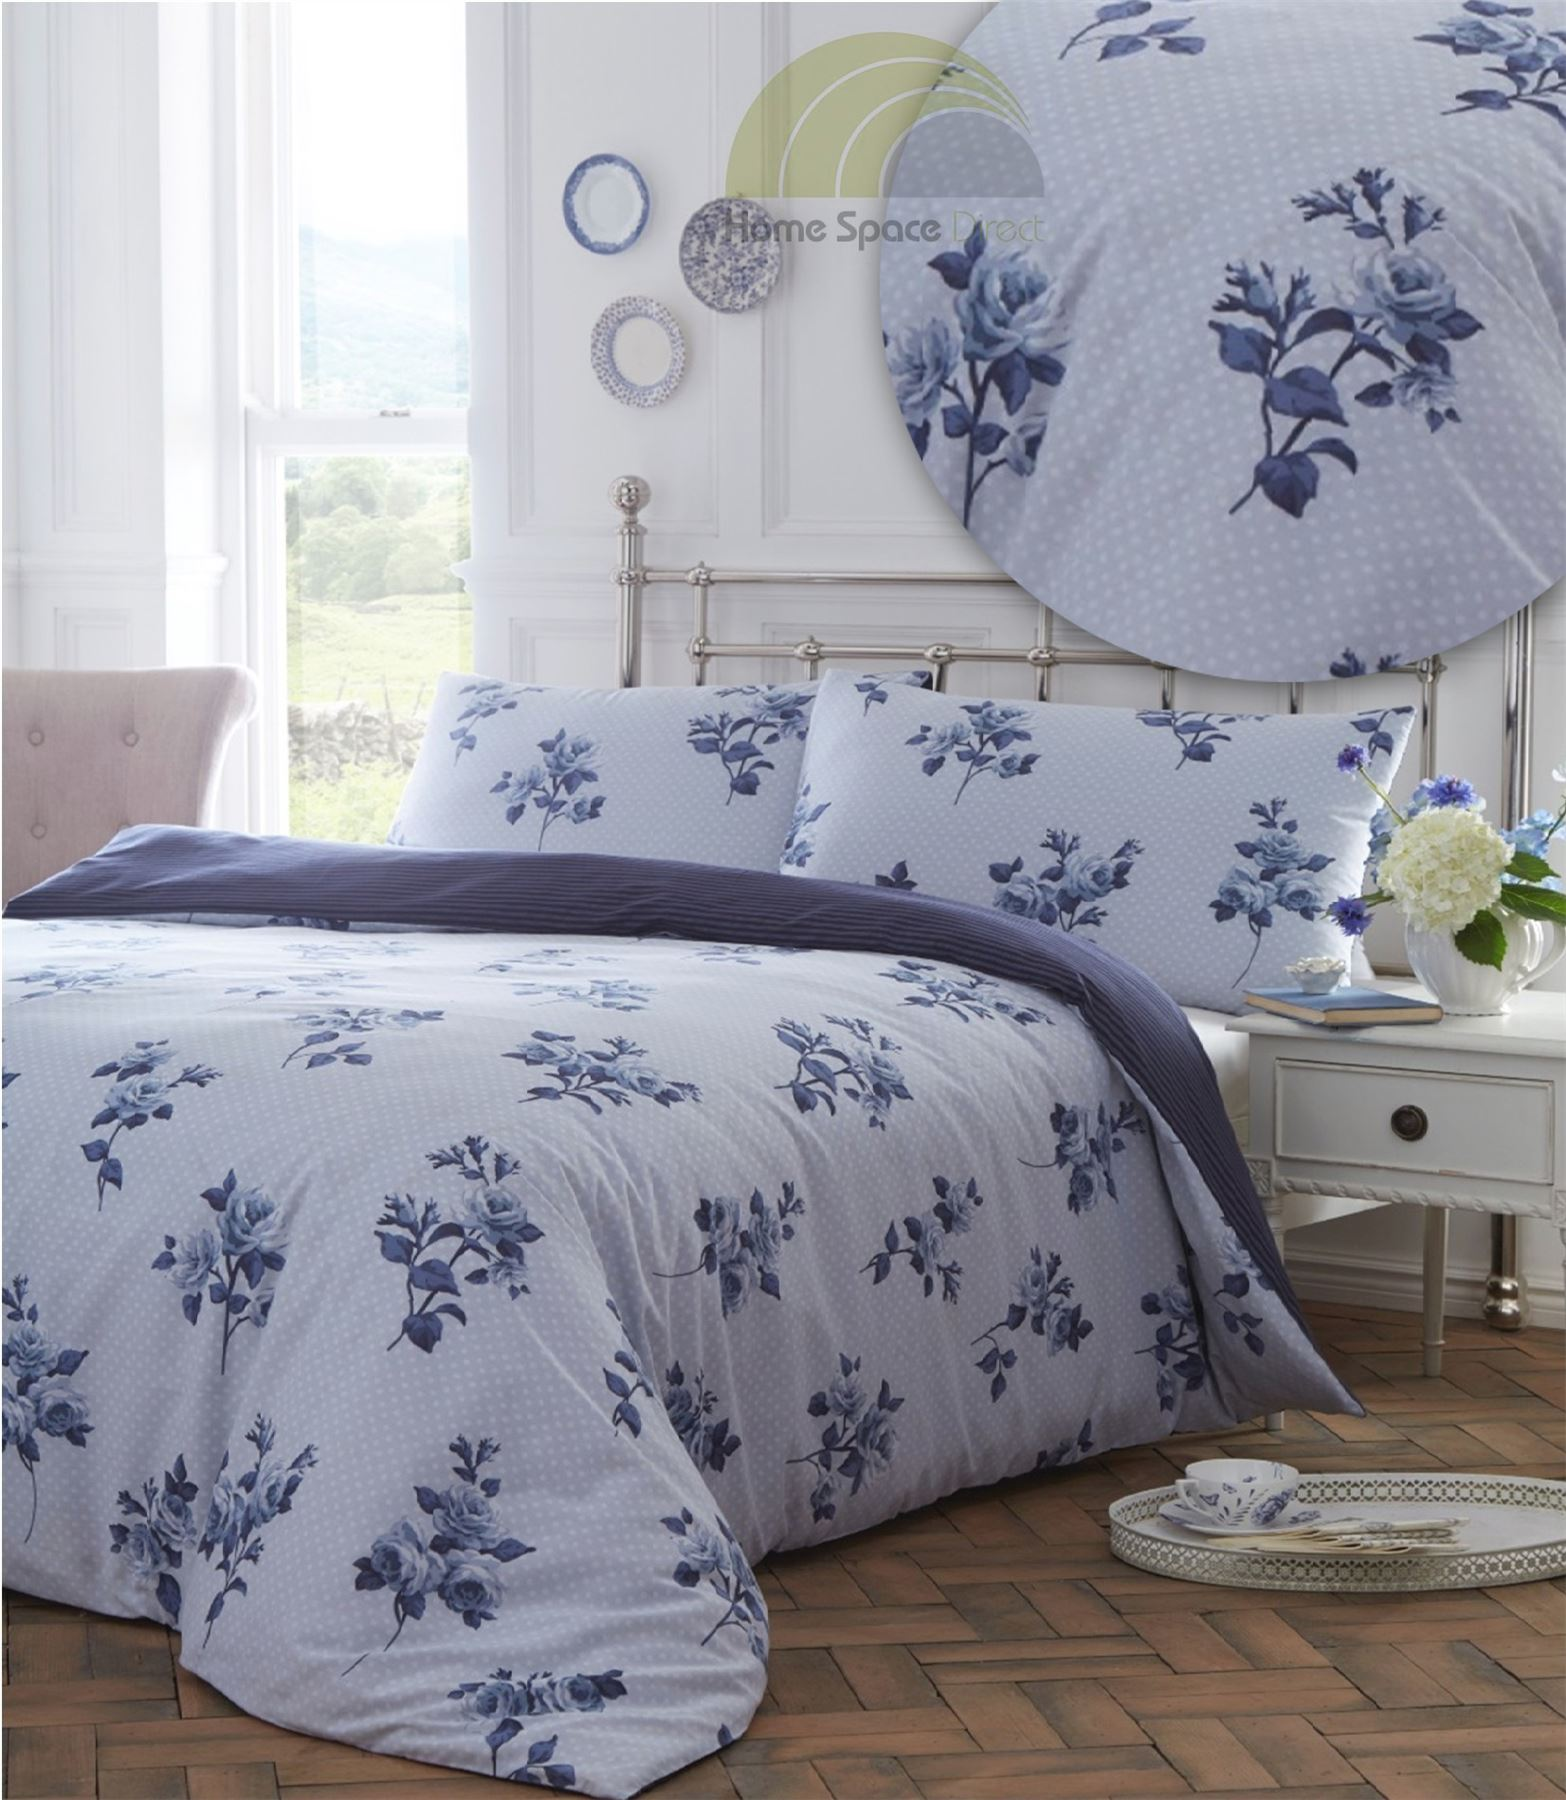 Lyckoax Duvet Cover And Pillowcase S White Lilac: Floral Modern Quilt Duvet Cover & Pillowcase Bedding Bed